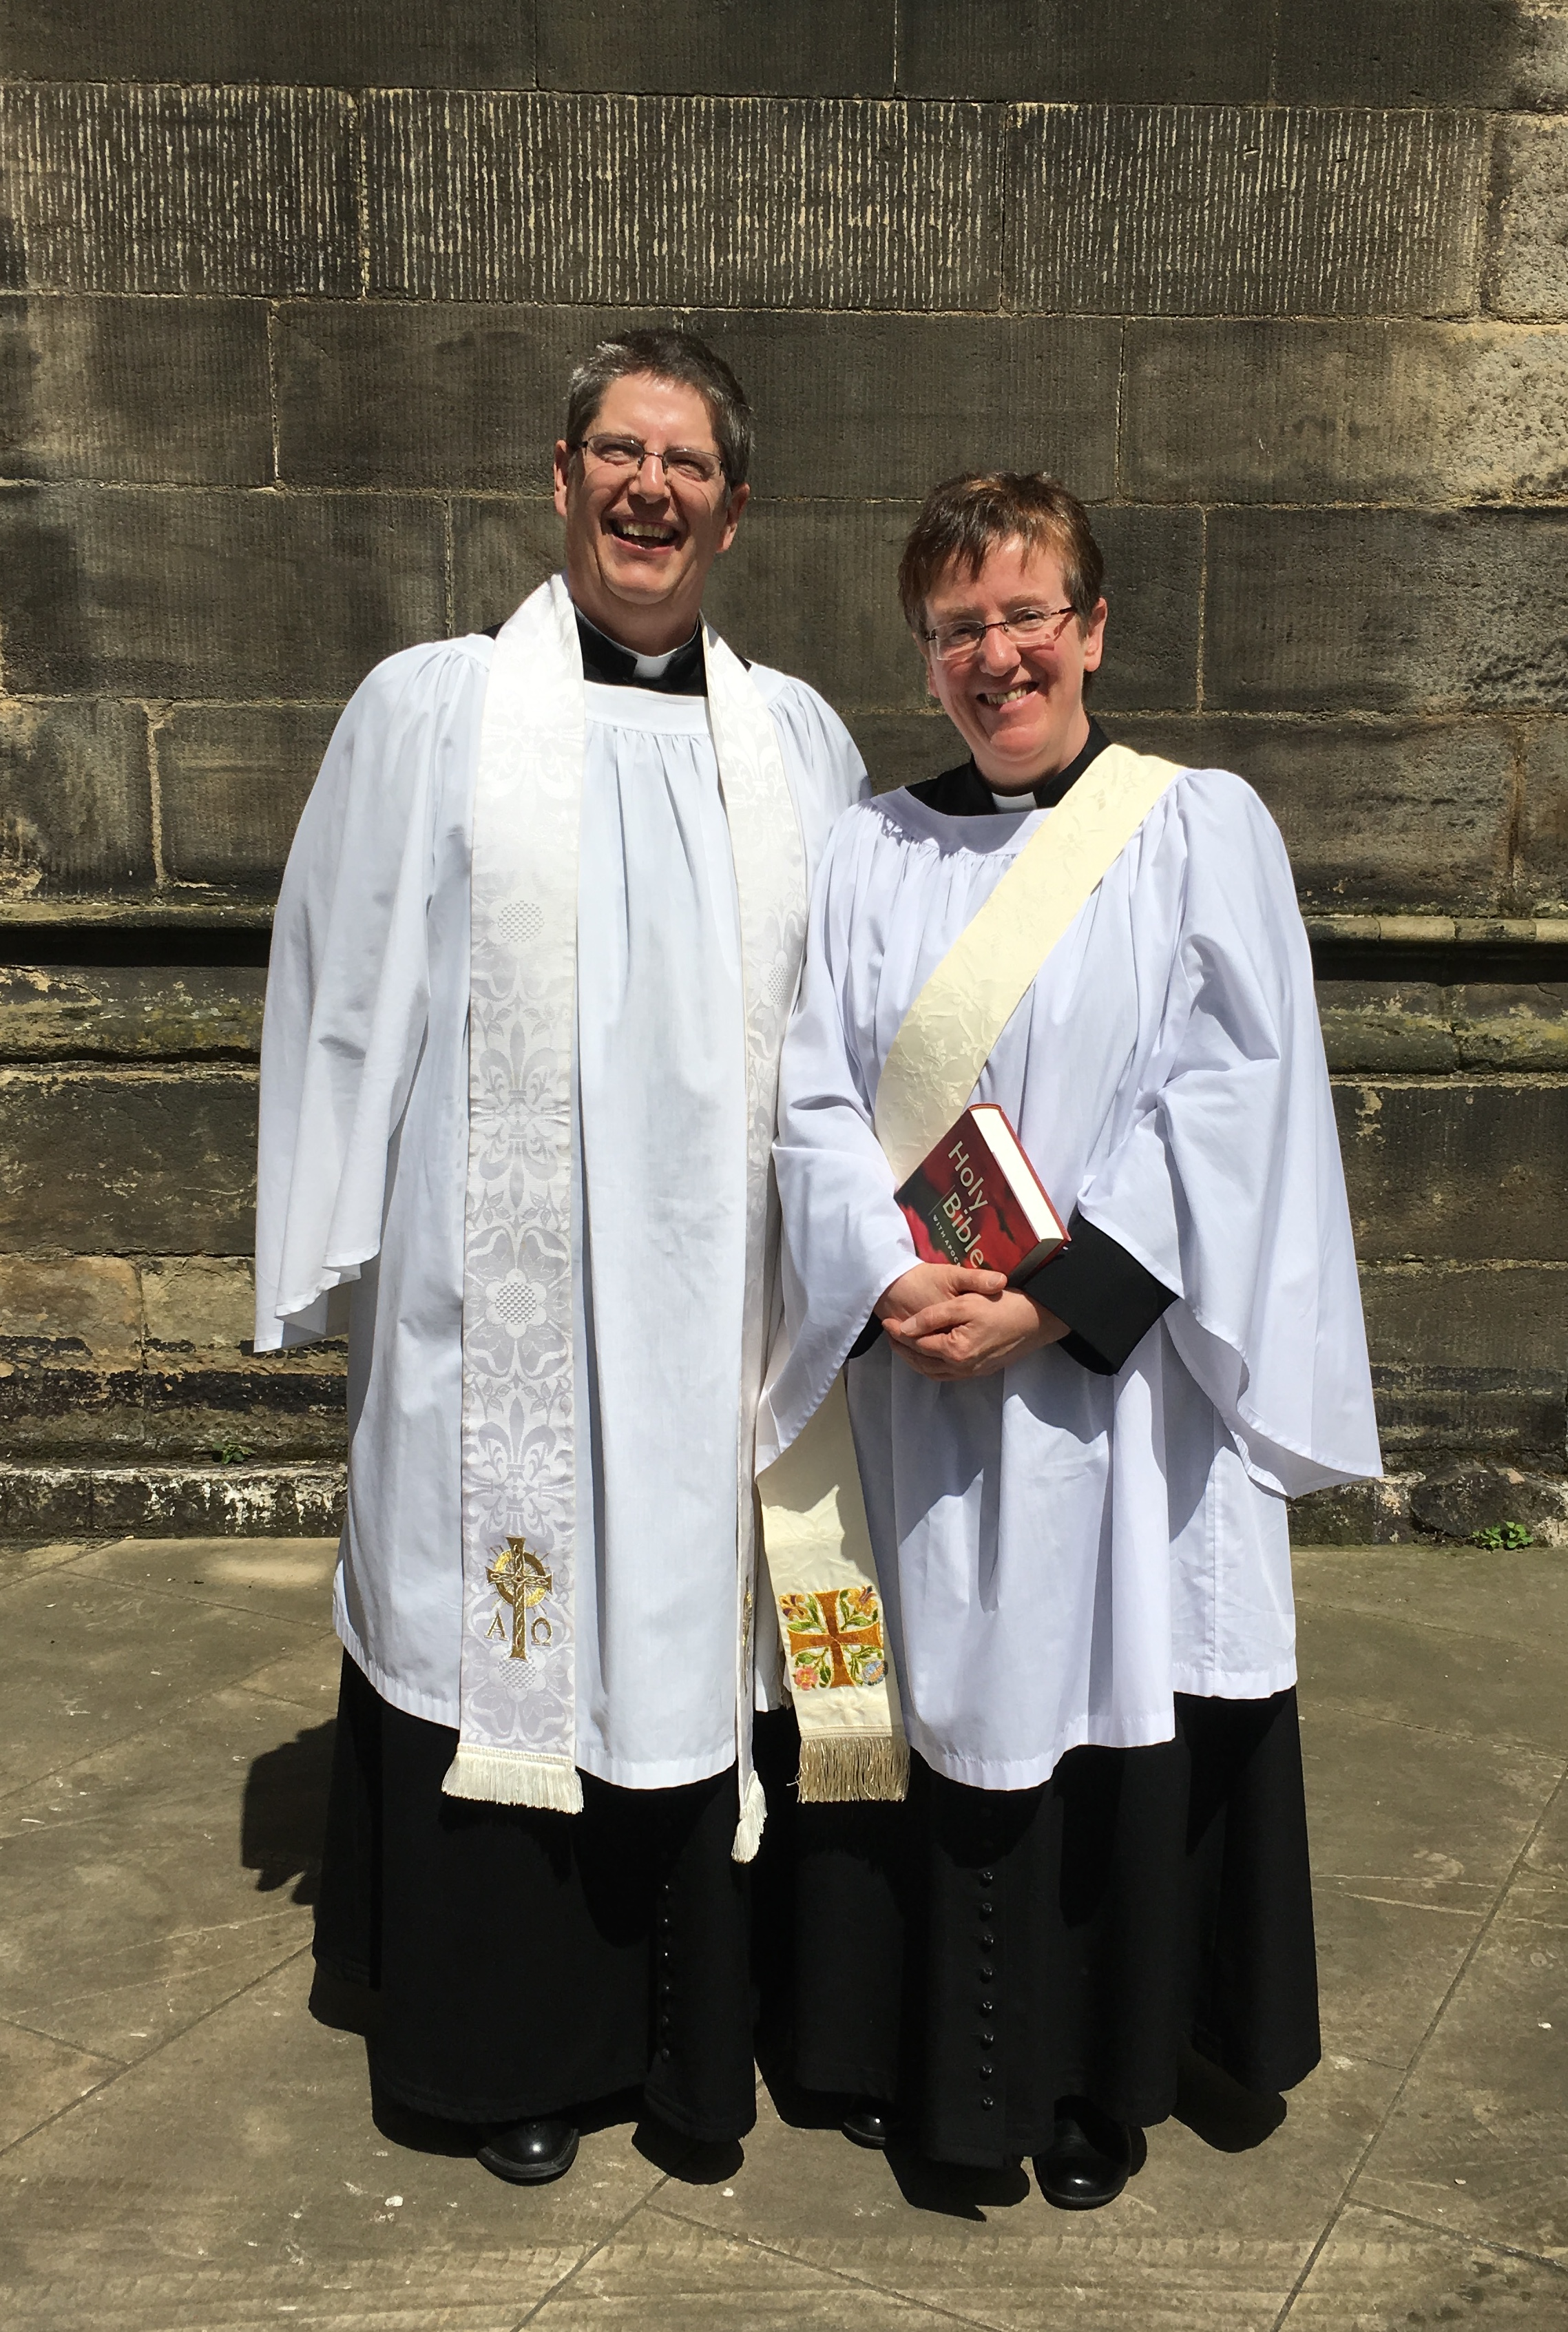 The Vicar and Assistant Curate